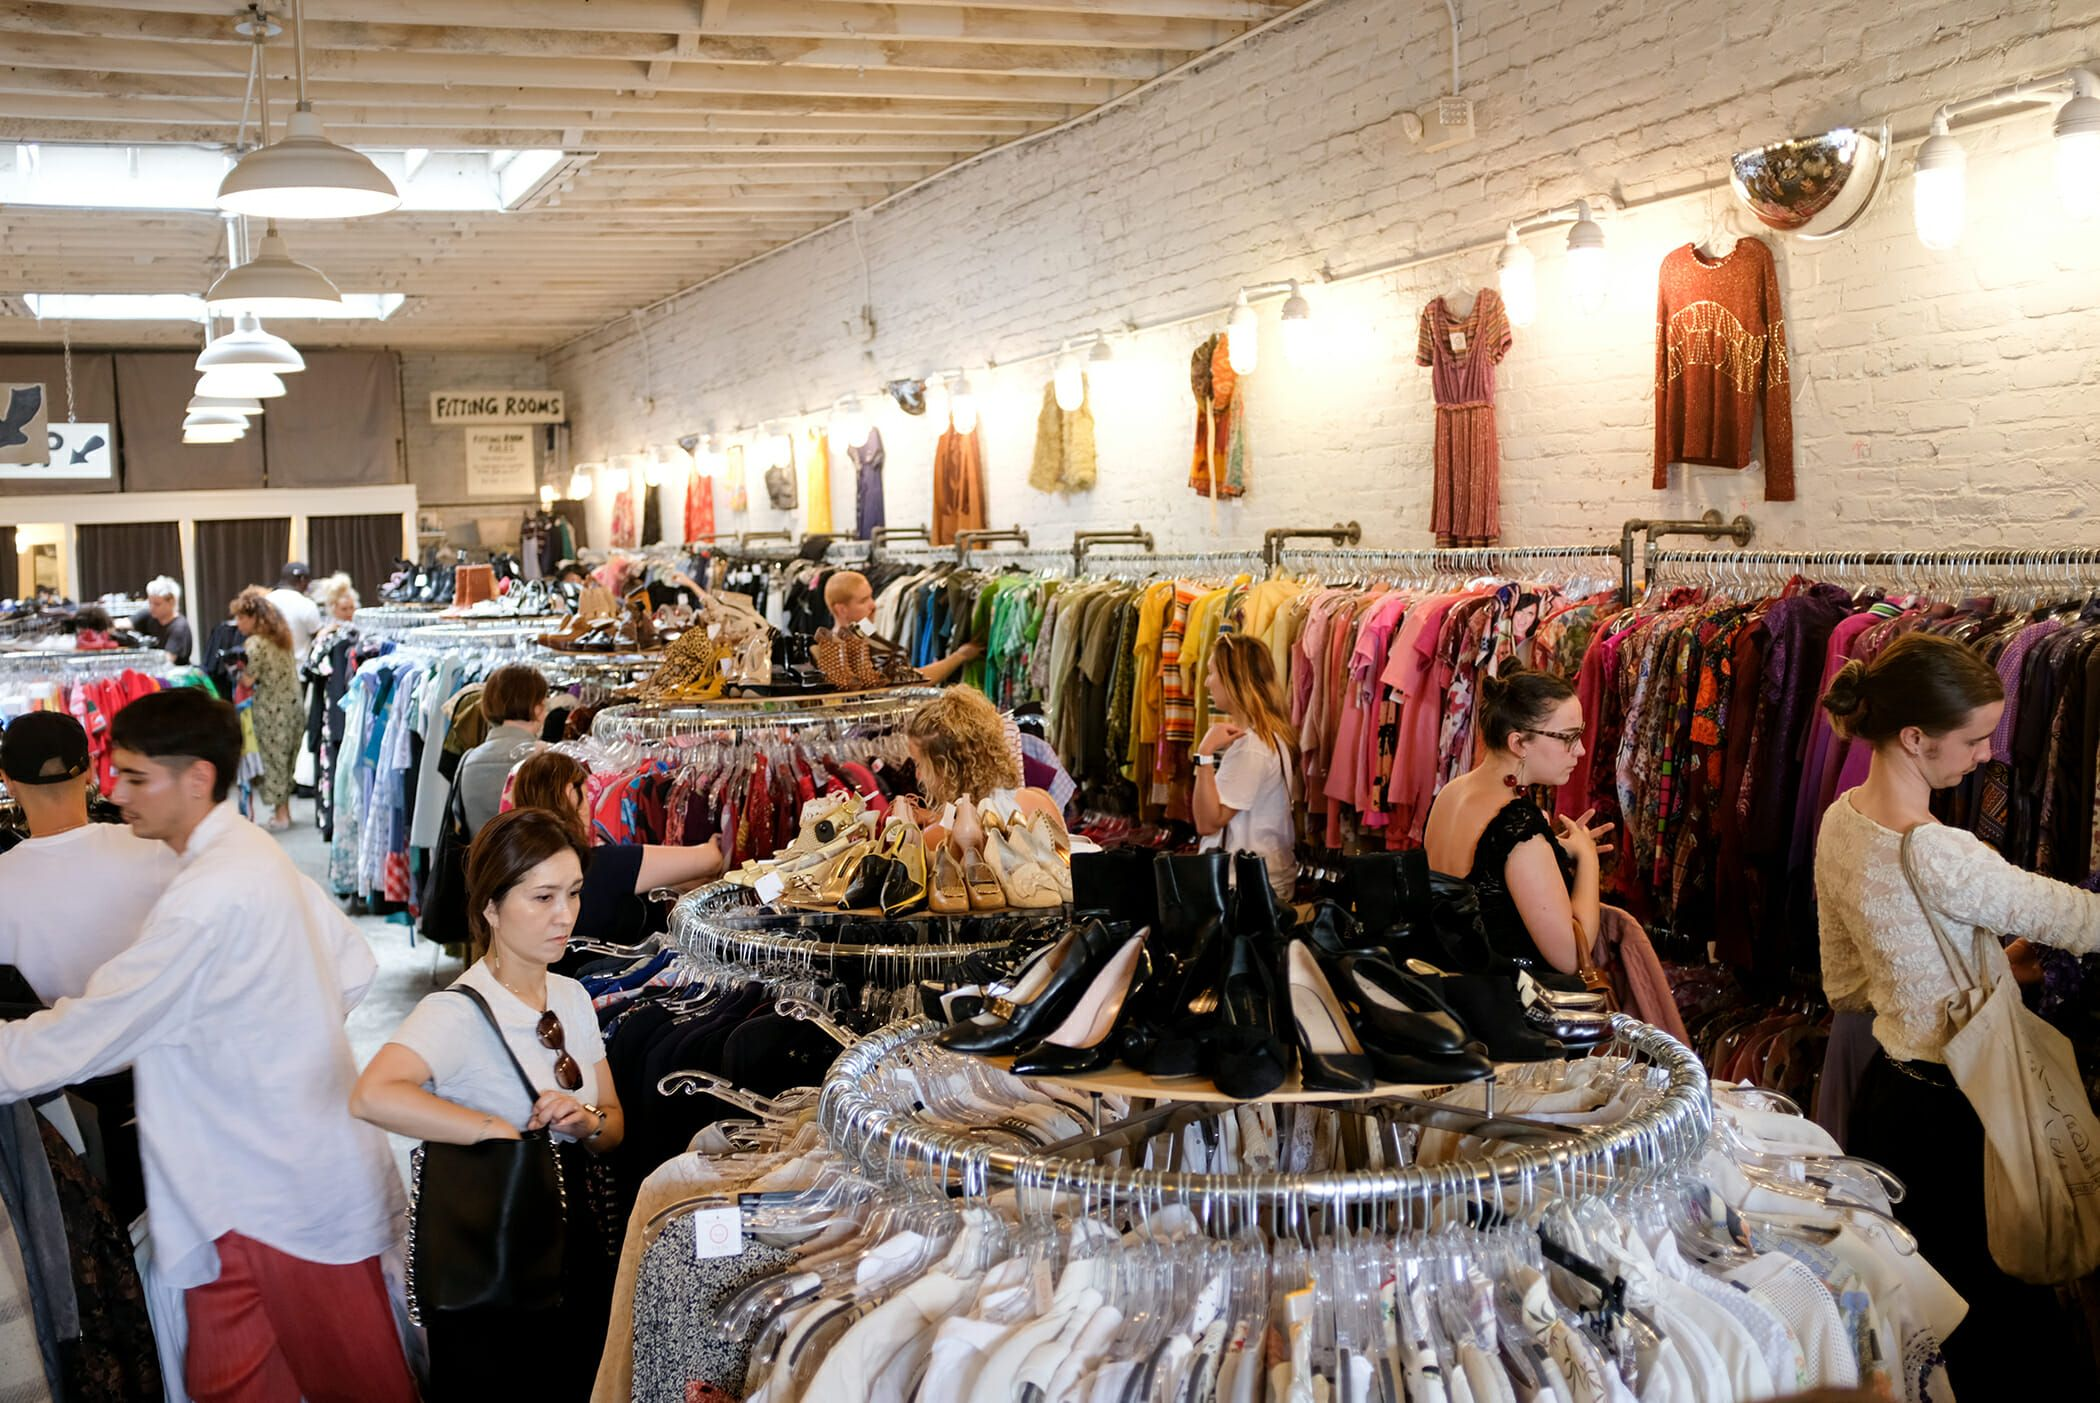 529e9159c9 A Guide to the Best Vintage and Thrift Stores in New York THERE ARE MORE  CHOICES IN VINTAGE YEAR ROUND!